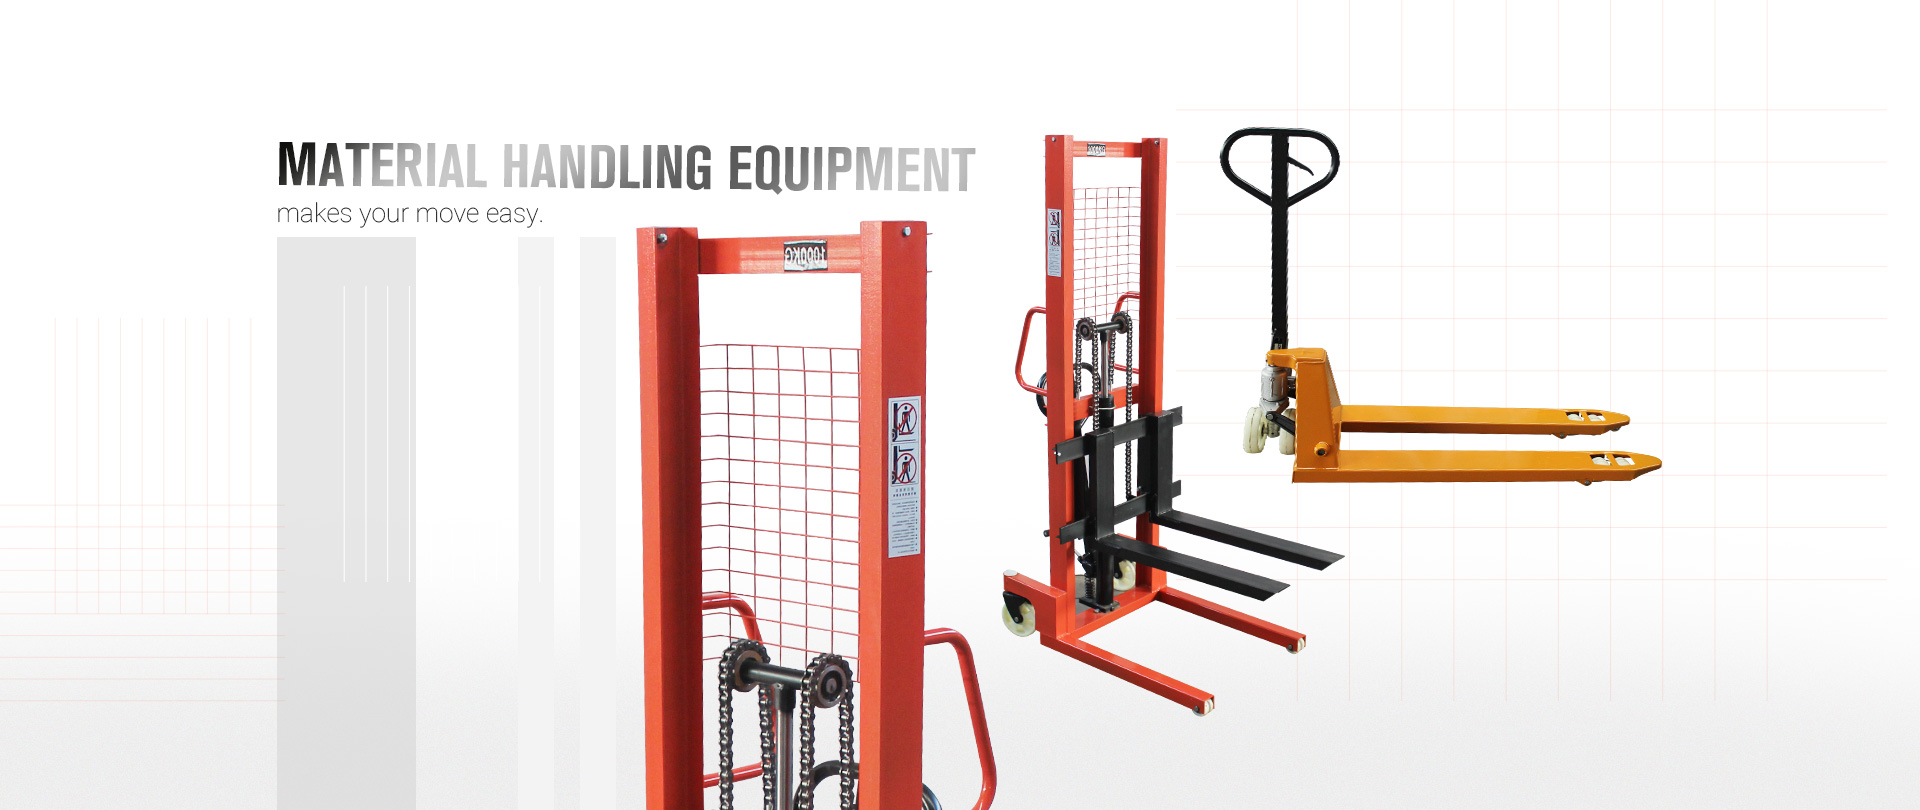 Material-handling-equipment-makes-your-move-easy.